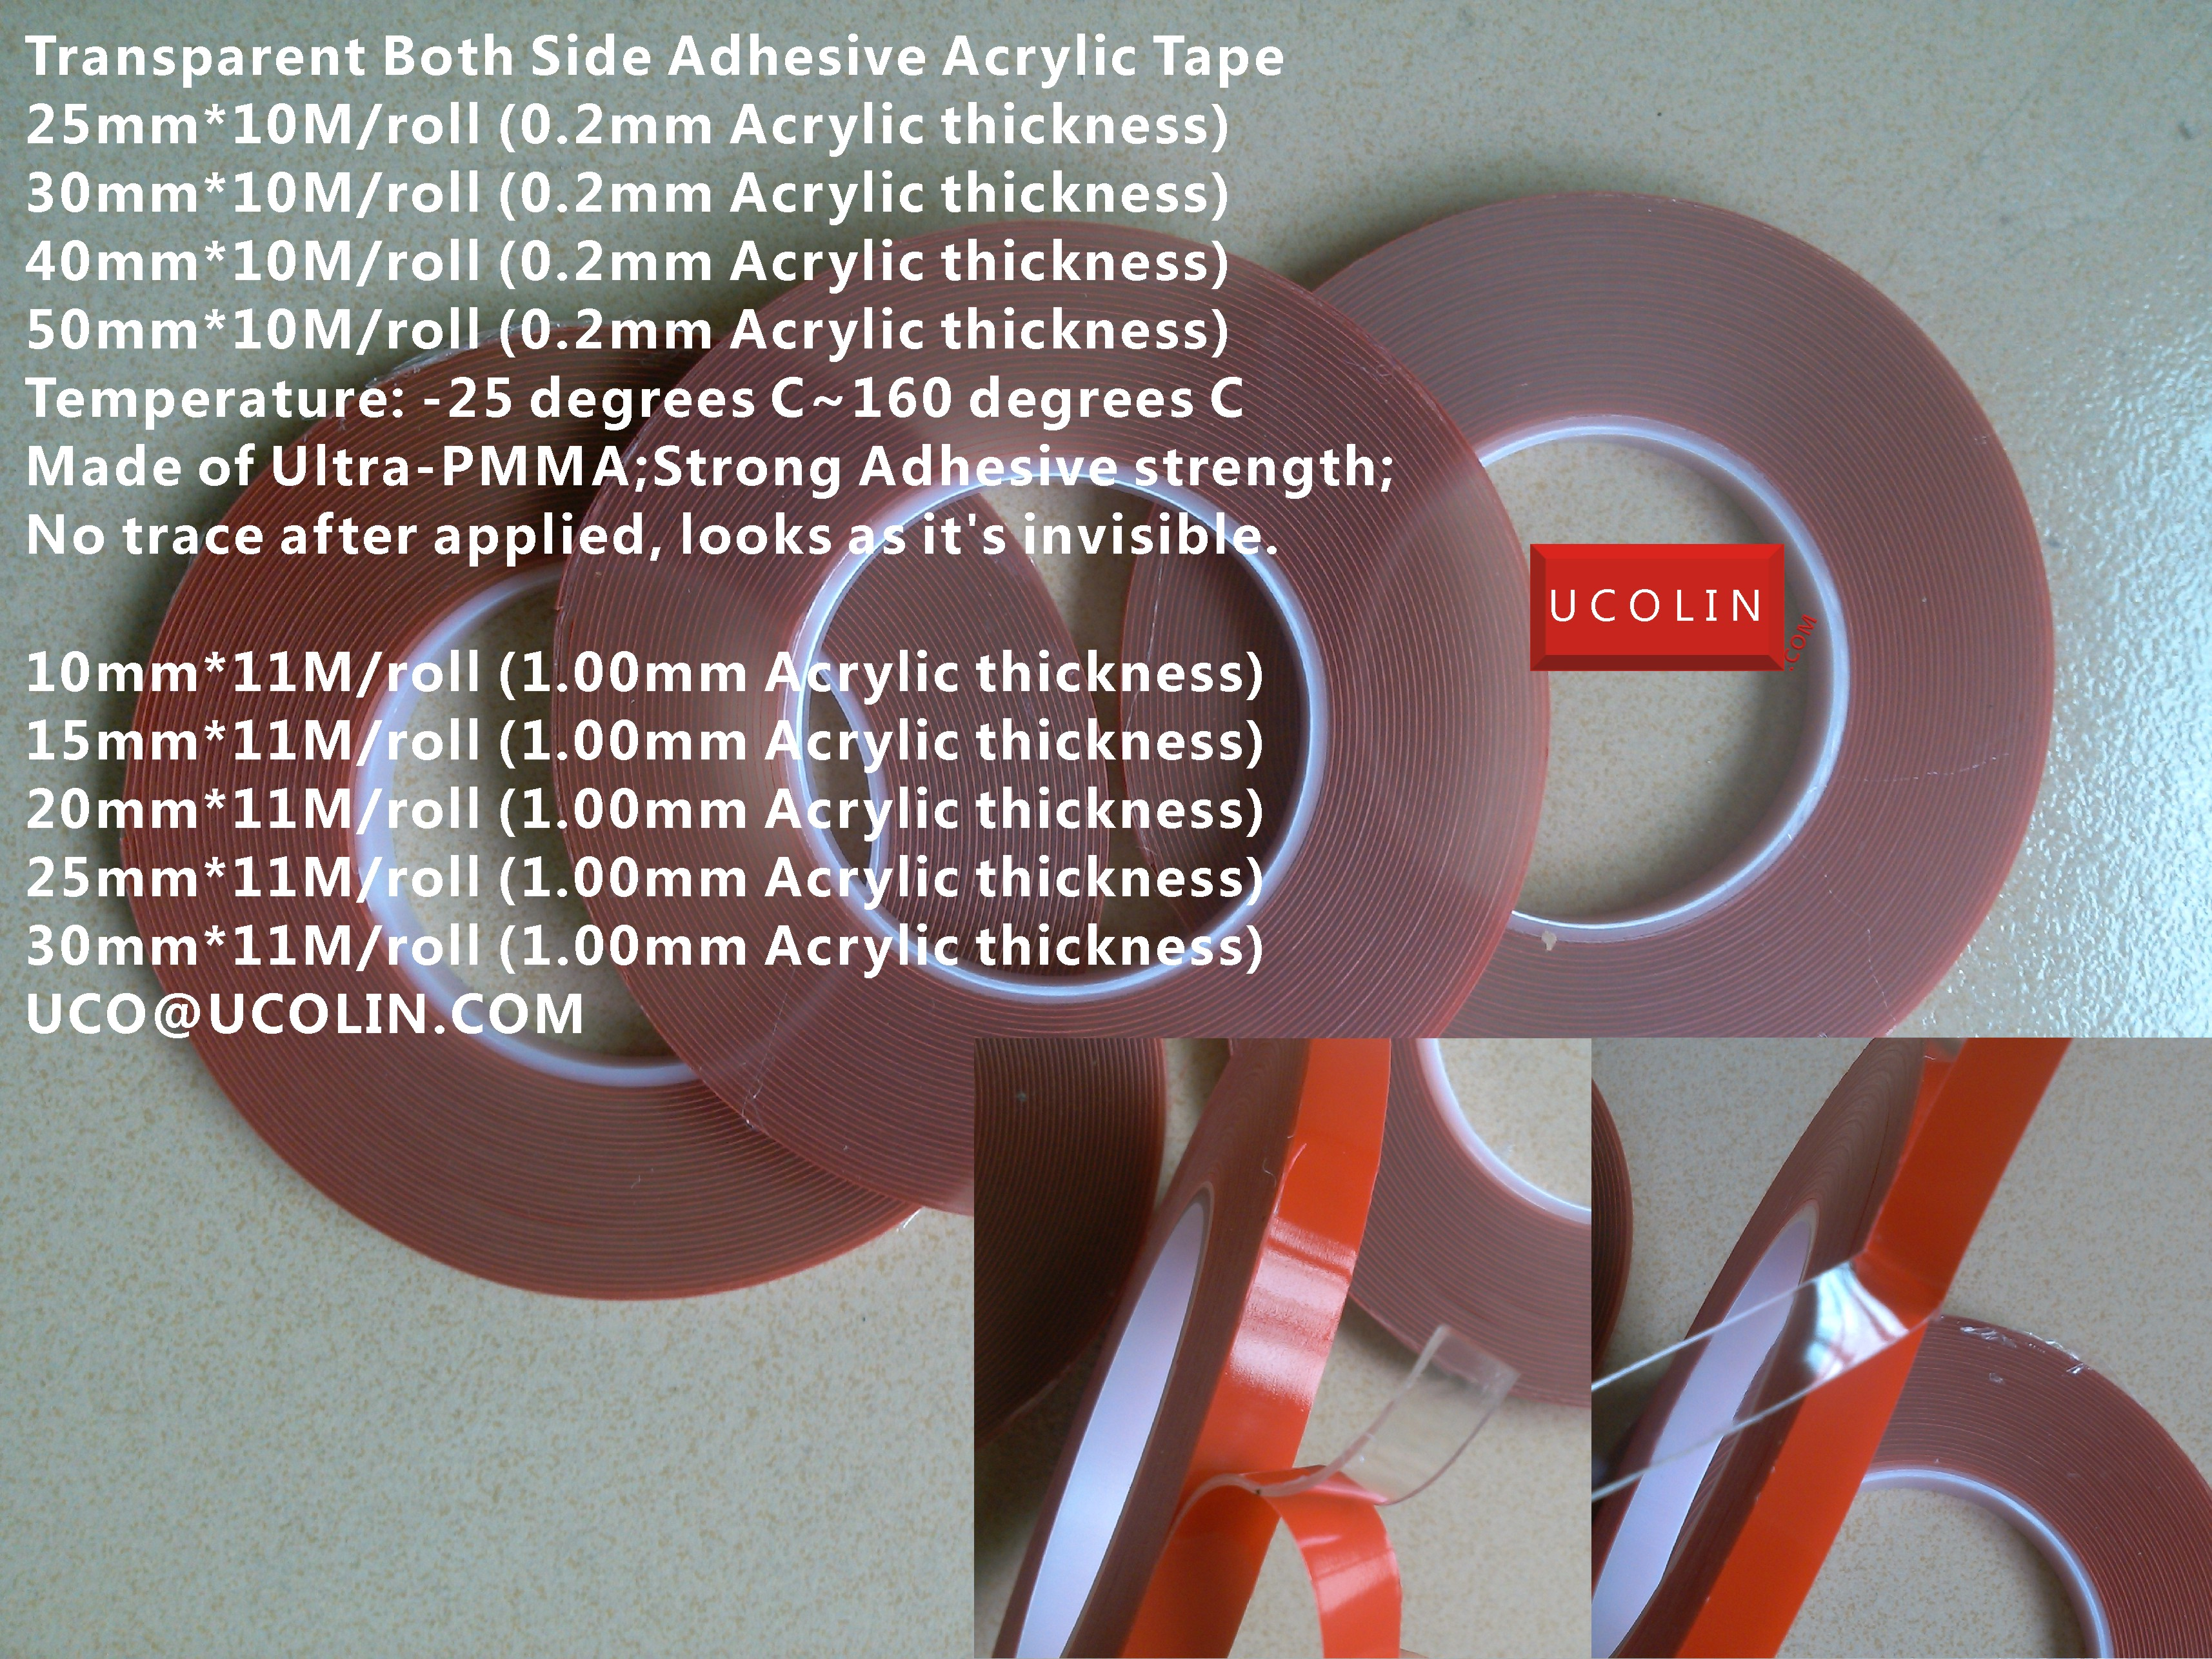 Transparent Both Side Adhesive Acrylic Tape